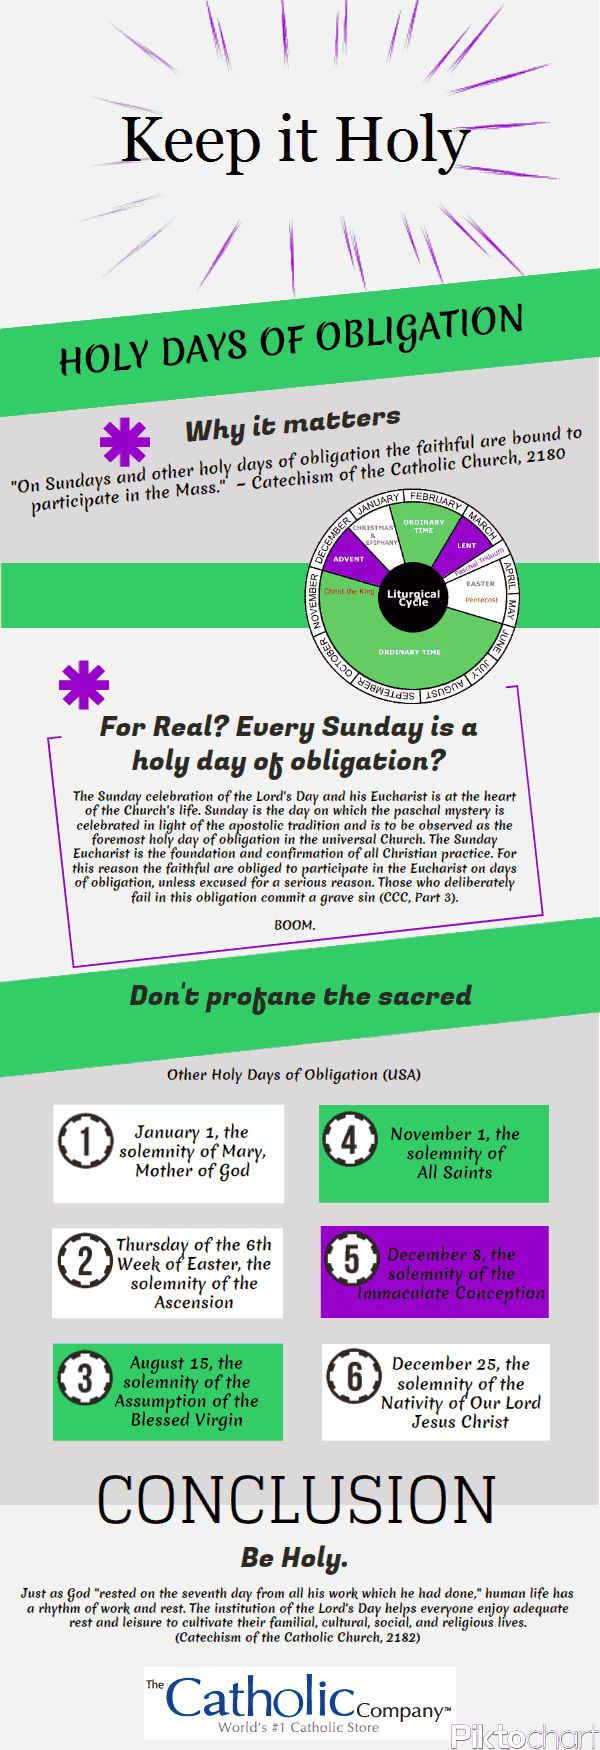 The Holy Days of Obligation for the Roman Catholic Church in the United States